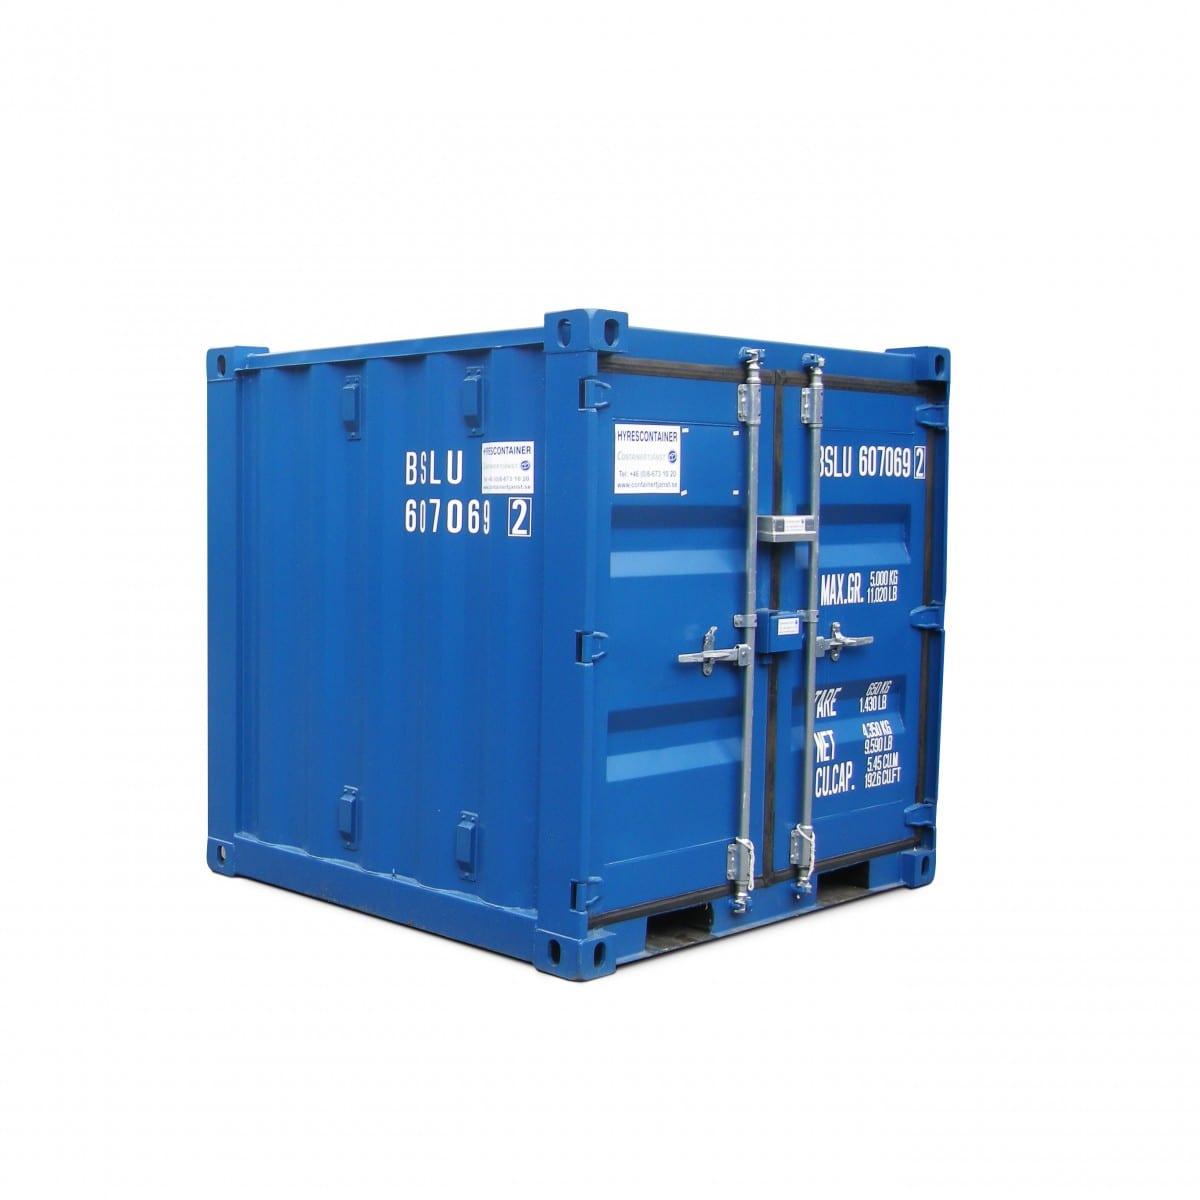 Hyra eller k pa container 6 fot containertj nst for Container en